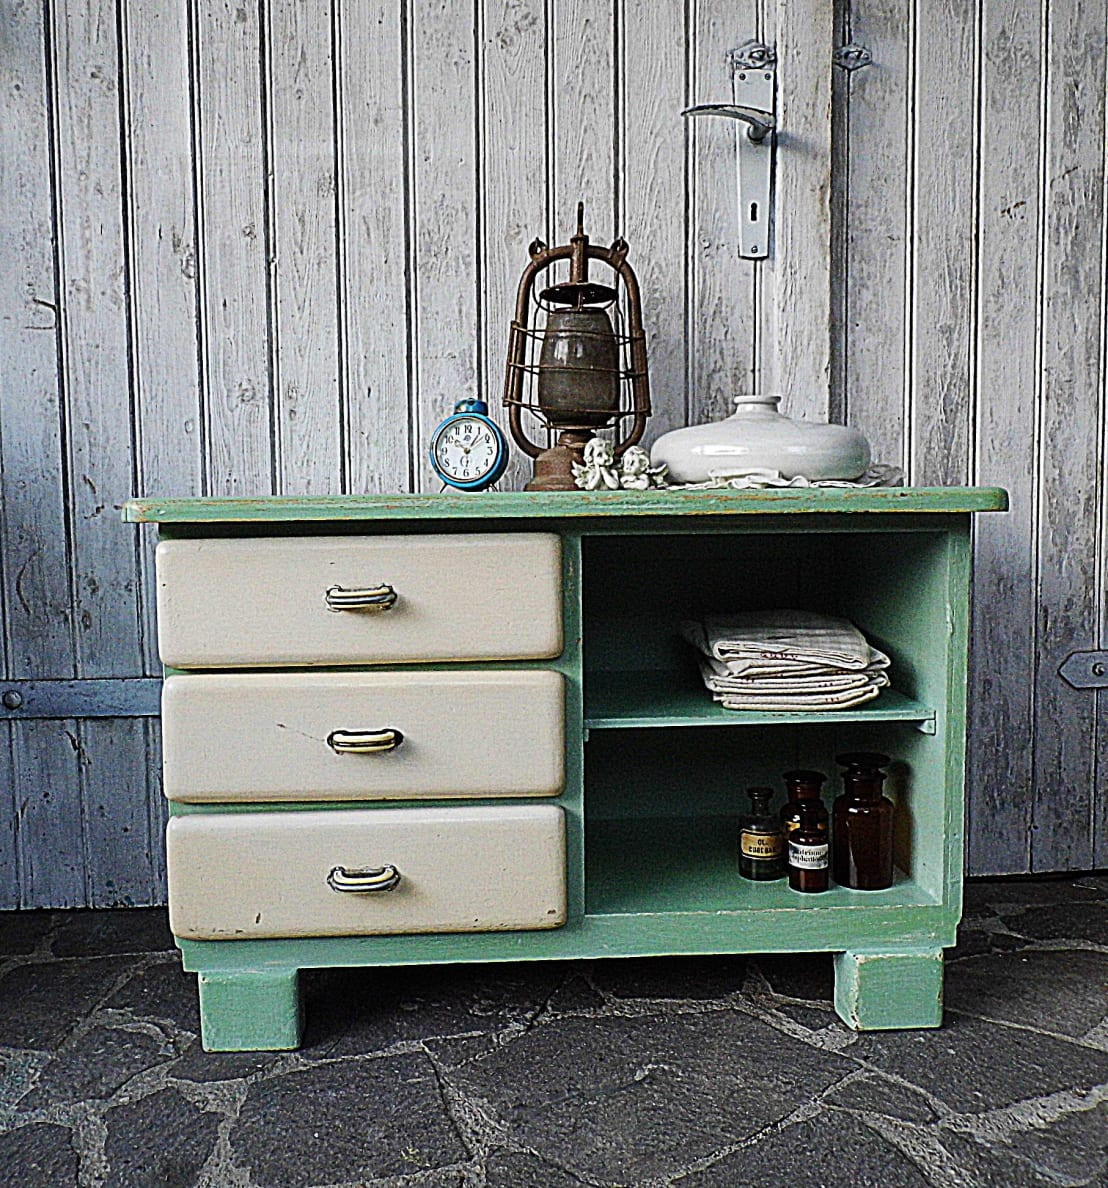 vintage kommode pastell shabby chic von gerne wieder gbr homify. Black Bedroom Furniture Sets. Home Design Ideas